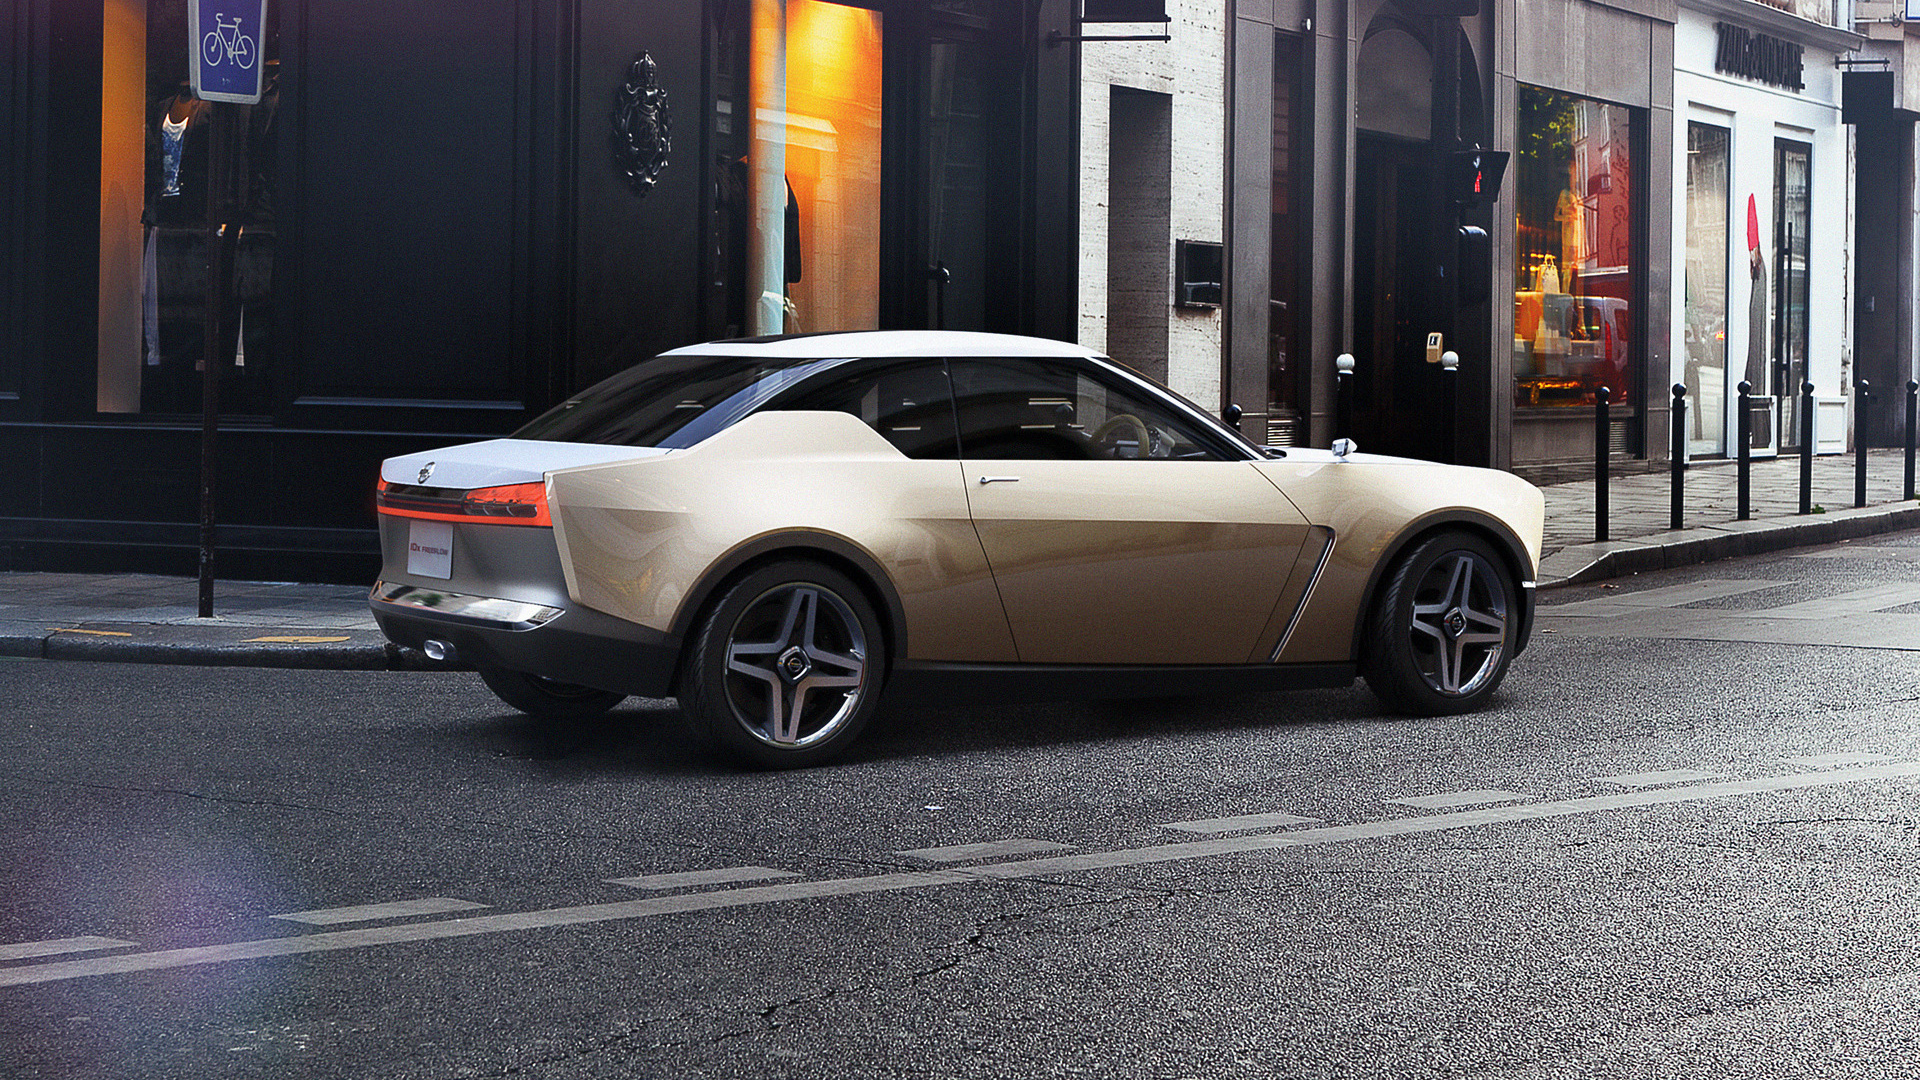 2019 Nissan IDx Freeflow Concept photo - 3